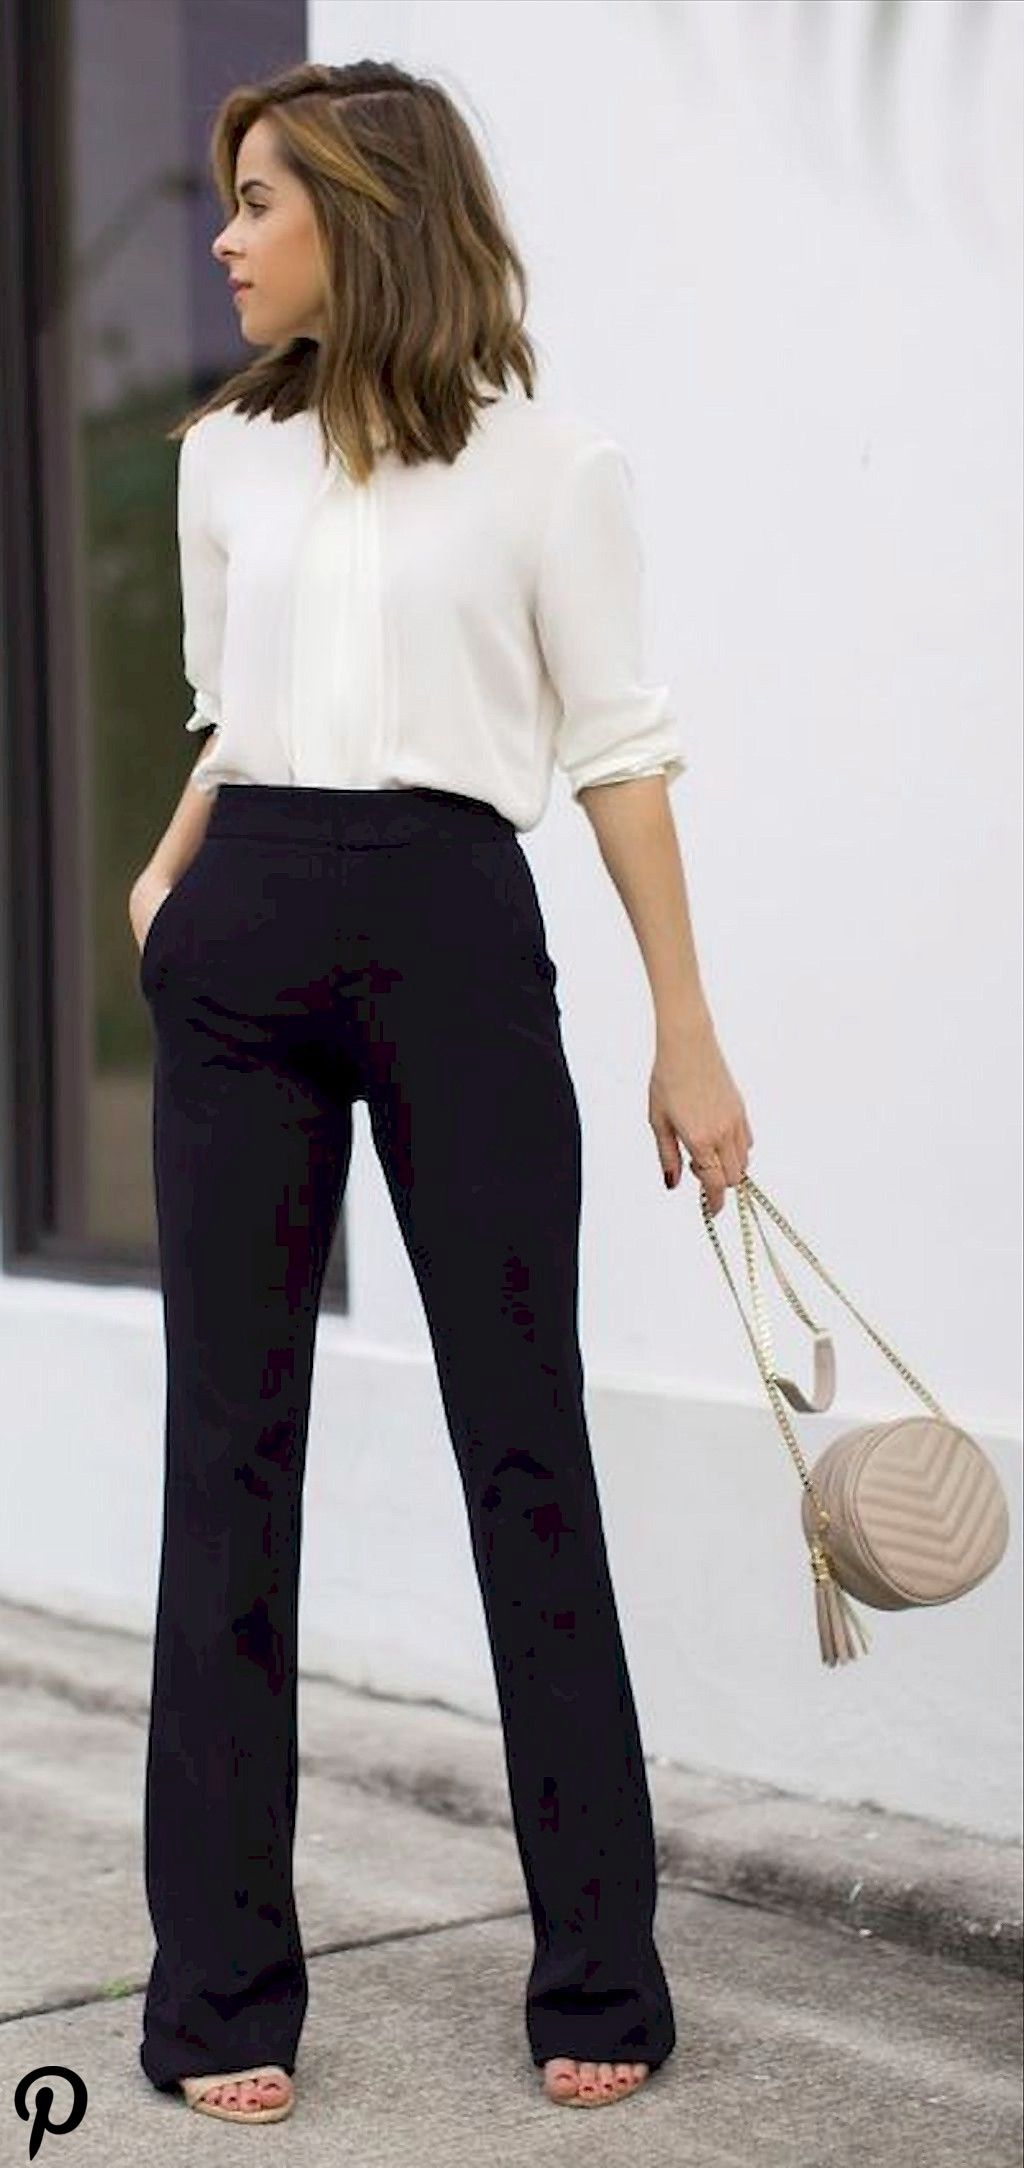 35 Elegant Work Outfits Every Woman Should Own As we prepare to work in the morning our minds are u 35 Elegant Work Outfits Every Woman Should Own As we prepare to work i...